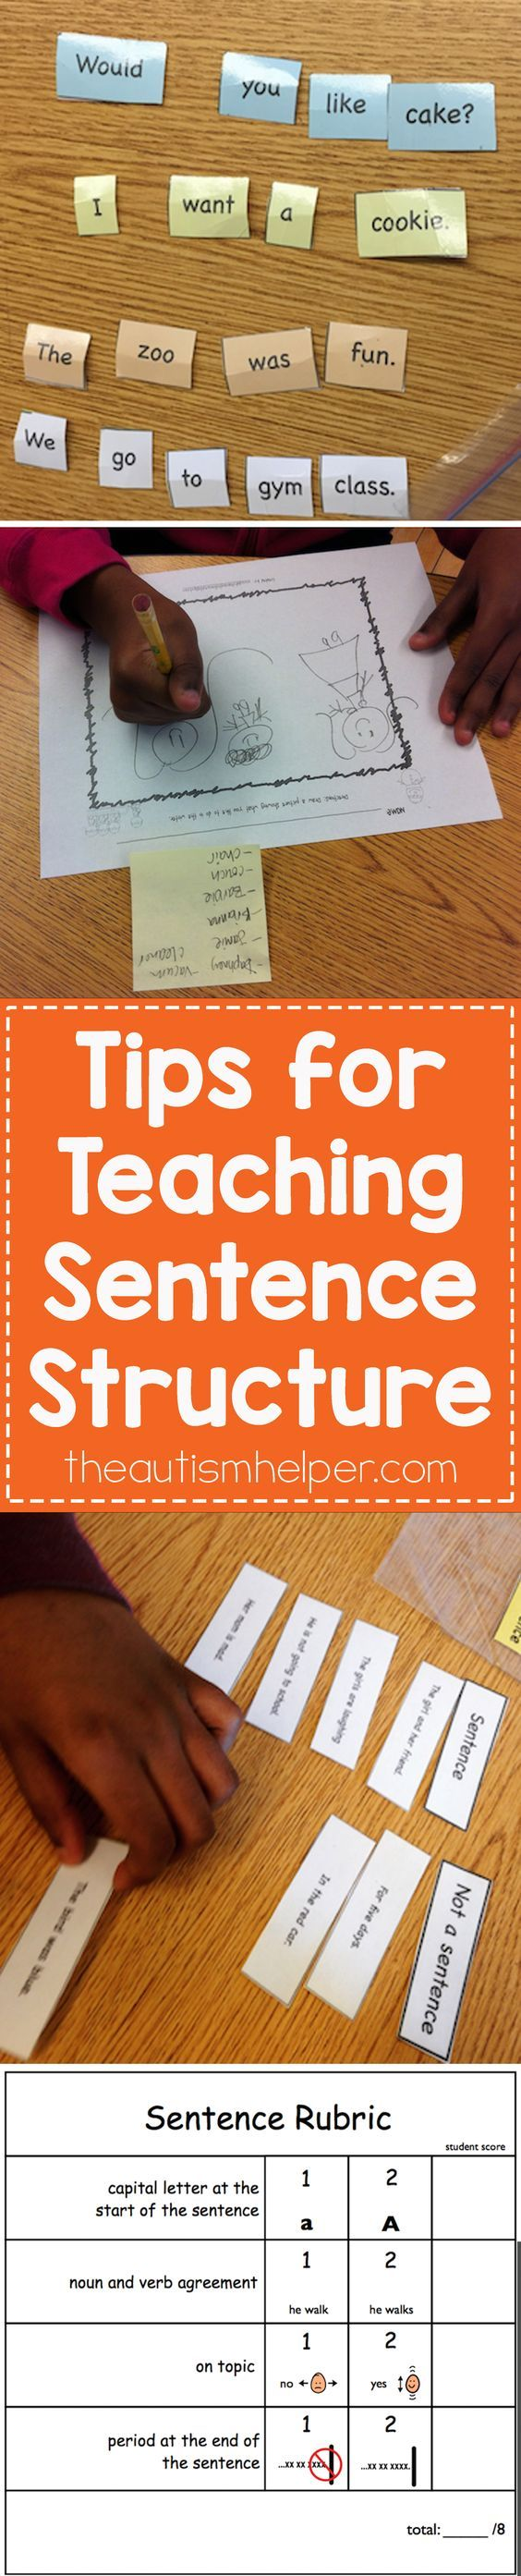 When we're targeting sentence structure, the skill level of our students can be pretty varied. Today I'm sharing activities & strategies for targeting the writing a complete sentence!! From theautismhelper.com #theautismhelper